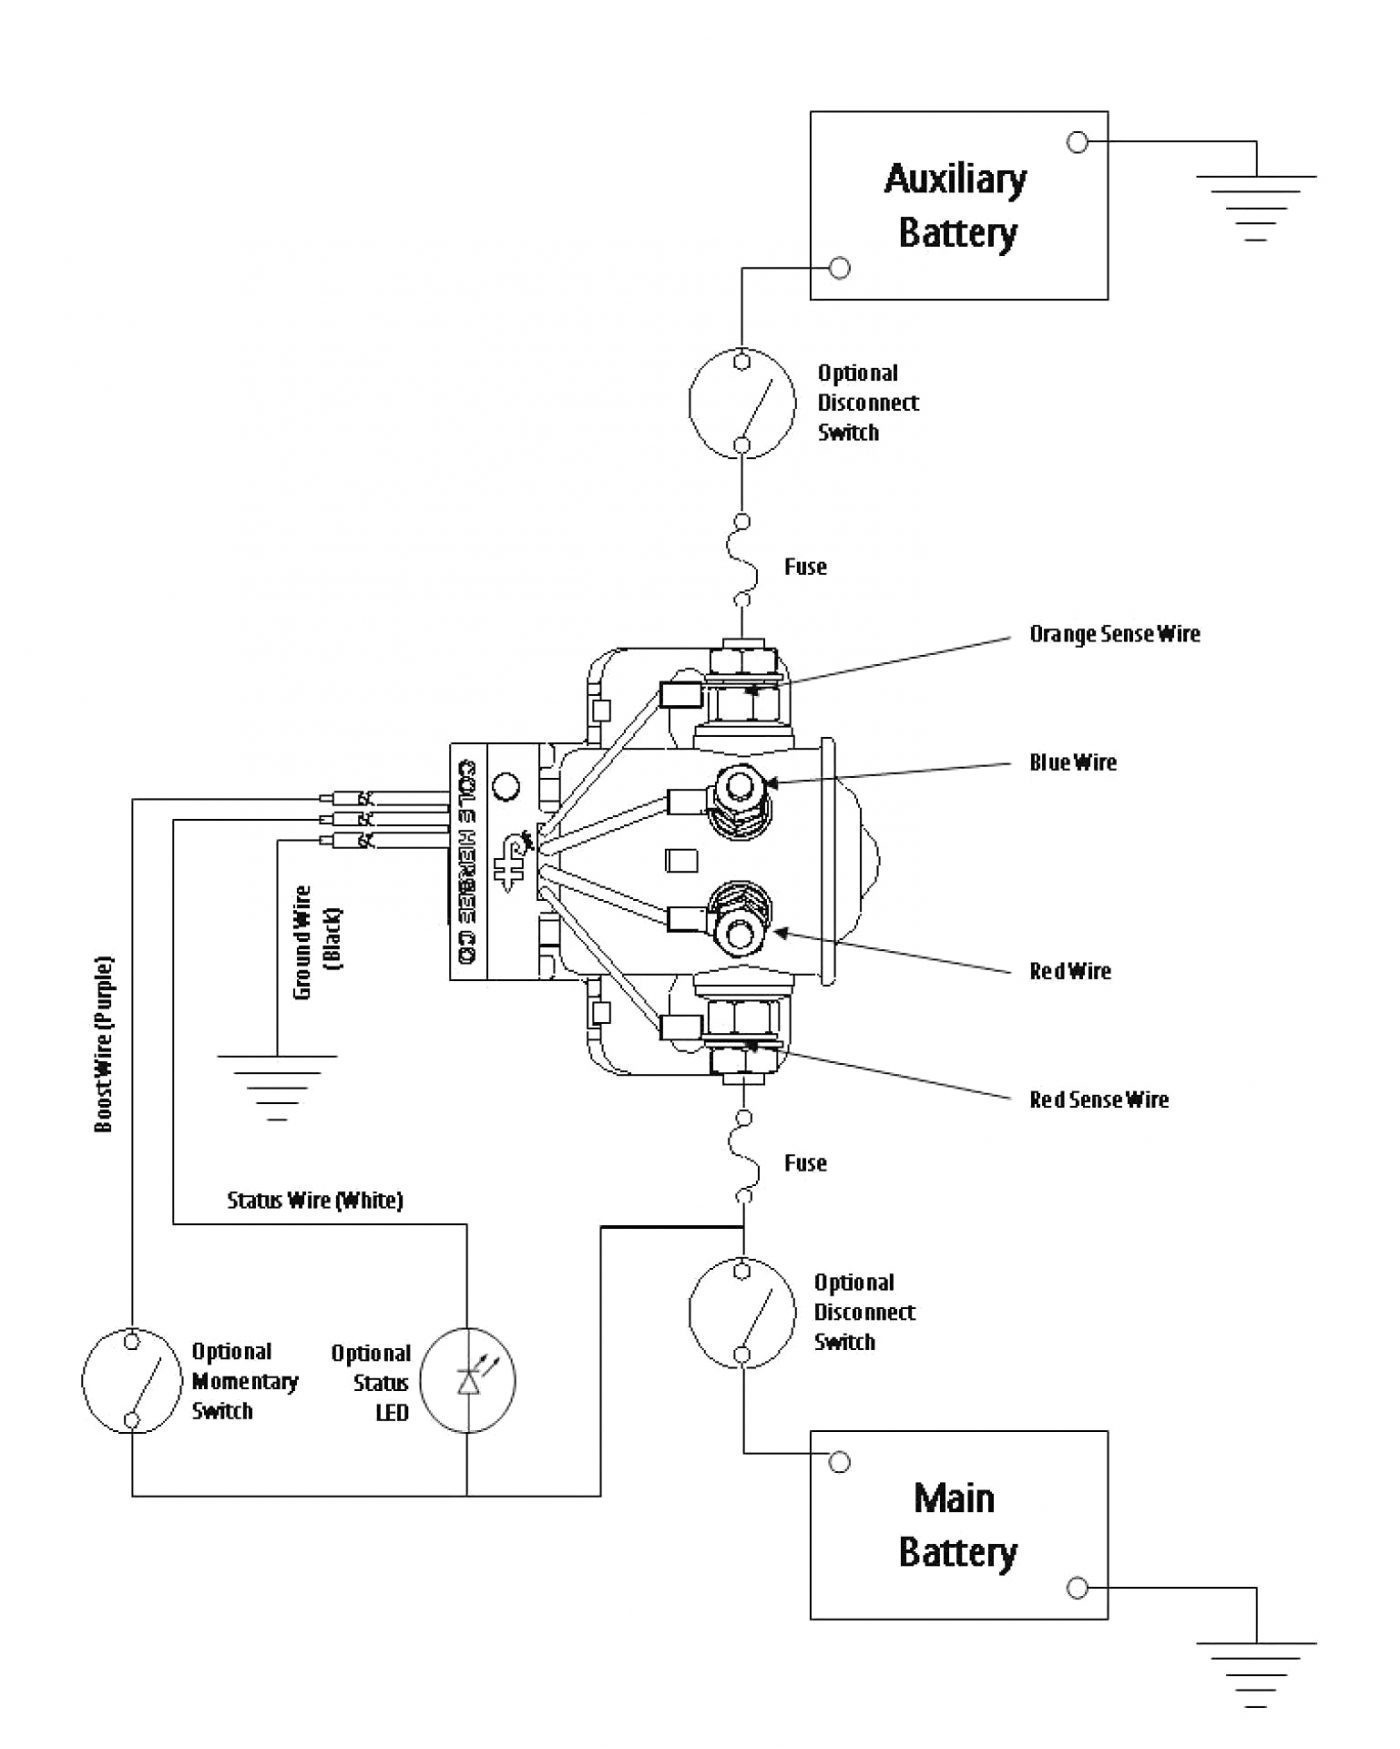 Infiniti Qx4 Engine Diagram Infiniti G35 Battery Wiring Diagram Schematics Wiring Diagrams • Of Infiniti Qx4 Engine Diagram 2001 Infiniti Qx4 Headlight Wiring Diagram Experts Wiring Diagram •